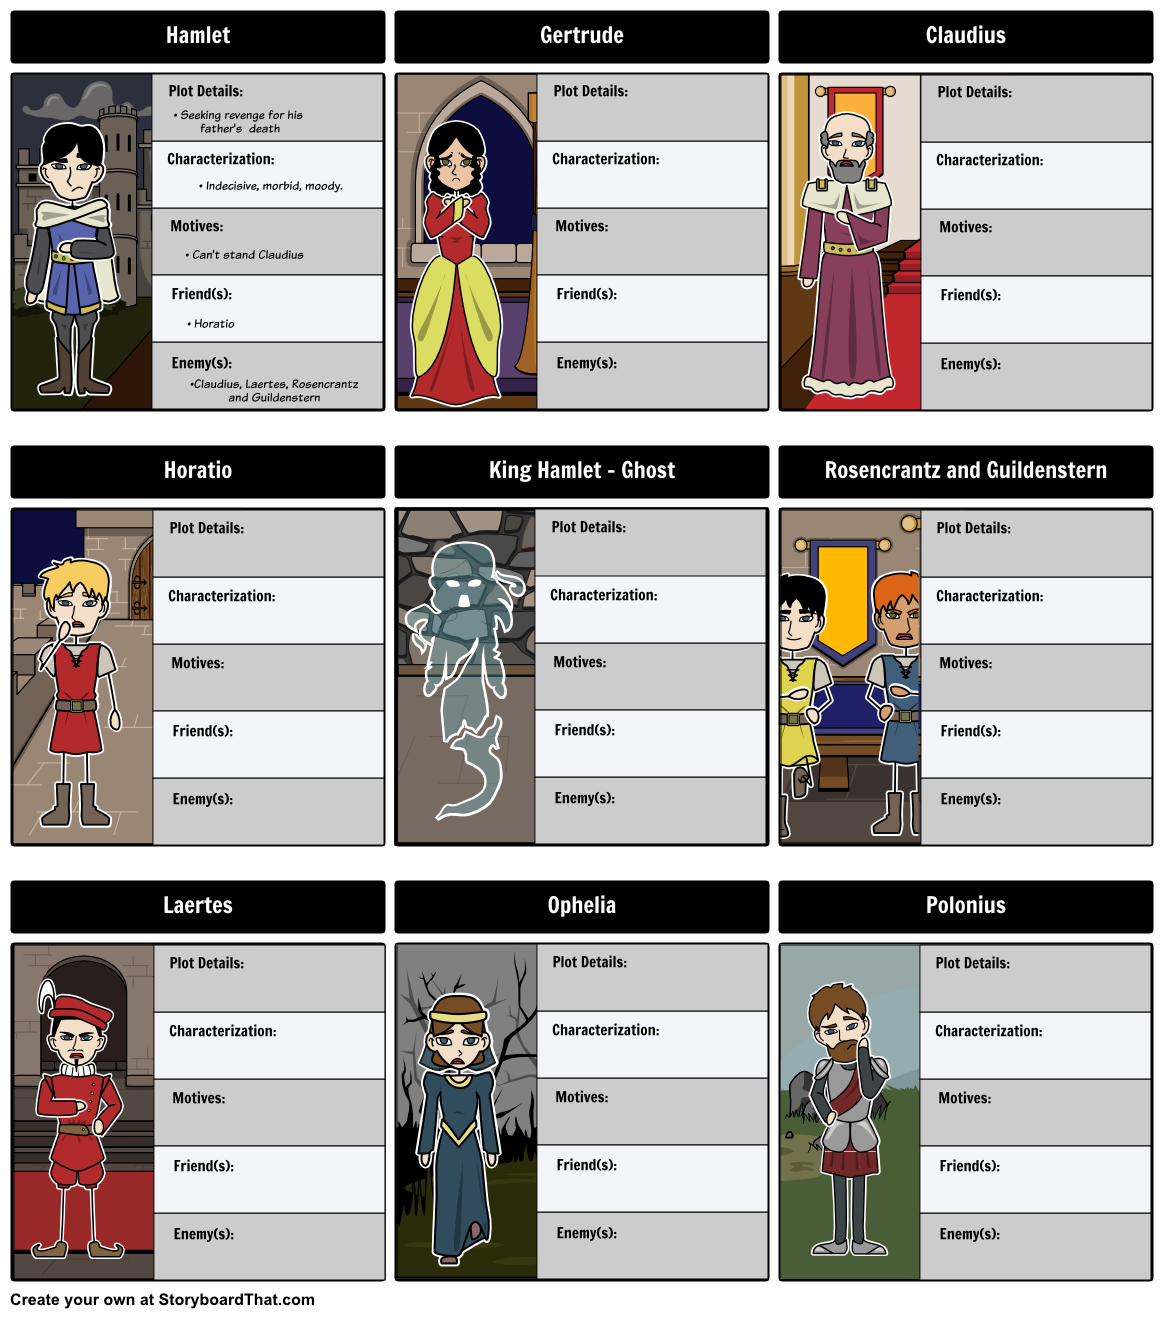 an analysis of characters and tragedy in macbeth a play by william shakespeare Shakespeare study guides here you will find a detailed analysis of selected plays, including information on the major characters and themes, study questions, annotations, and the theatrical history of each drama.